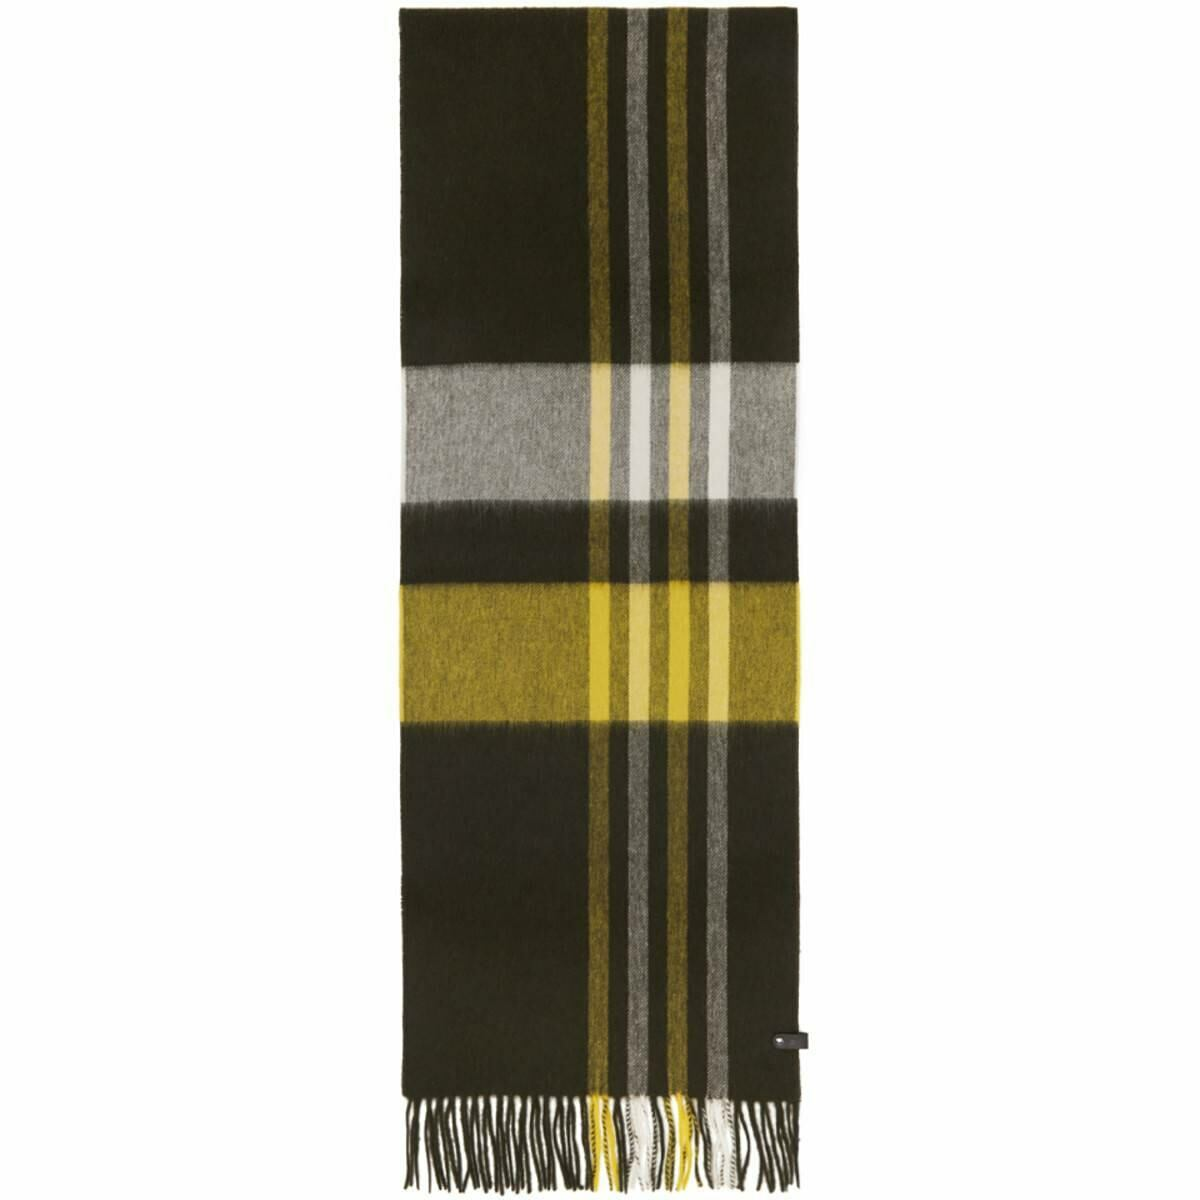 Mackage Yellow and Khaki Wool Ranger Scarf Ssense USA MEN Men ACCESSORIES Mens SCARFS